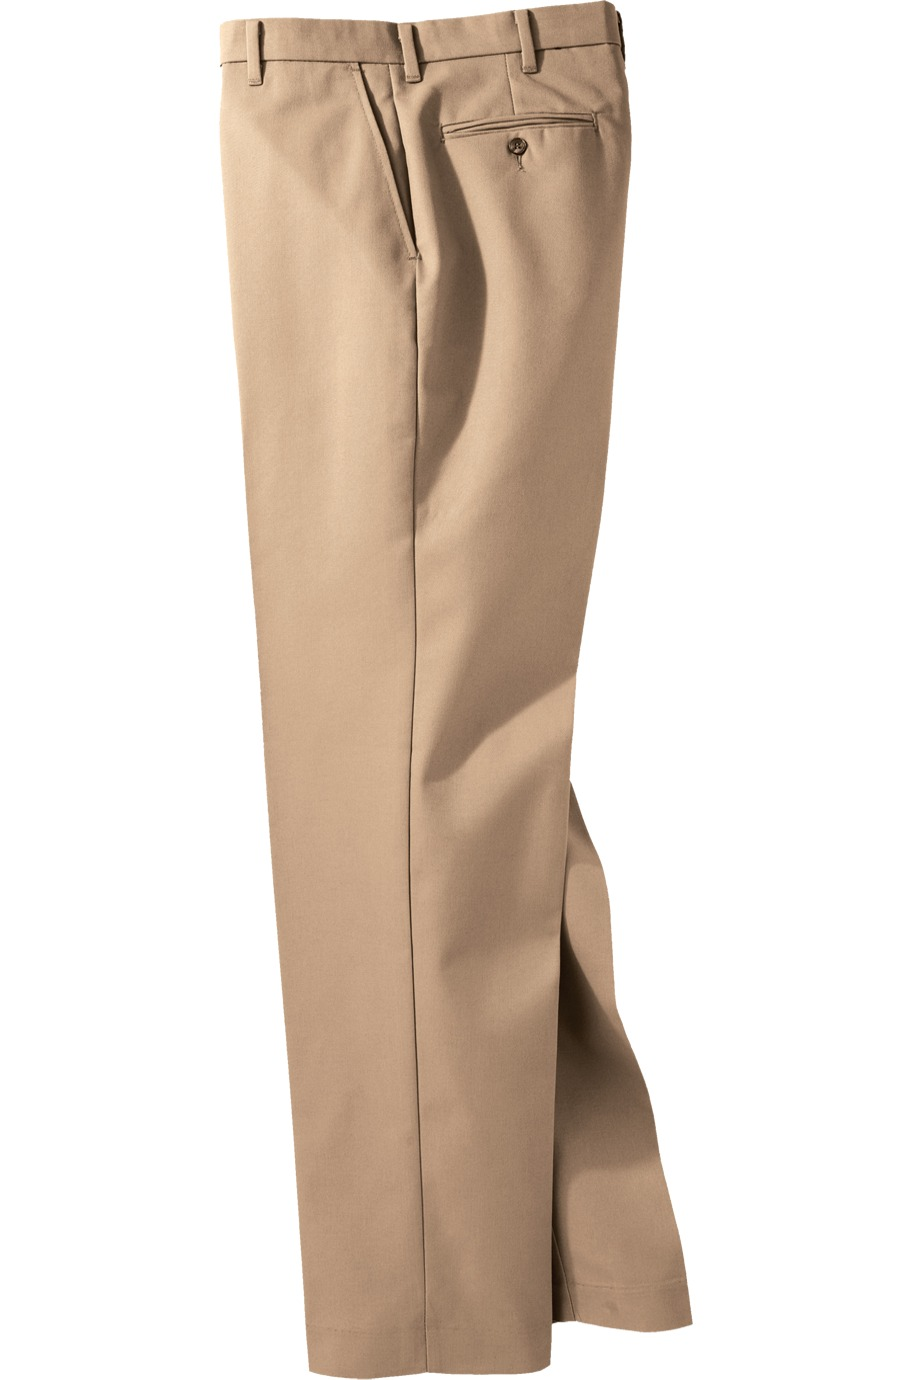 Edwards Garment 2510 - Men's Business Casual Flat Front Pant